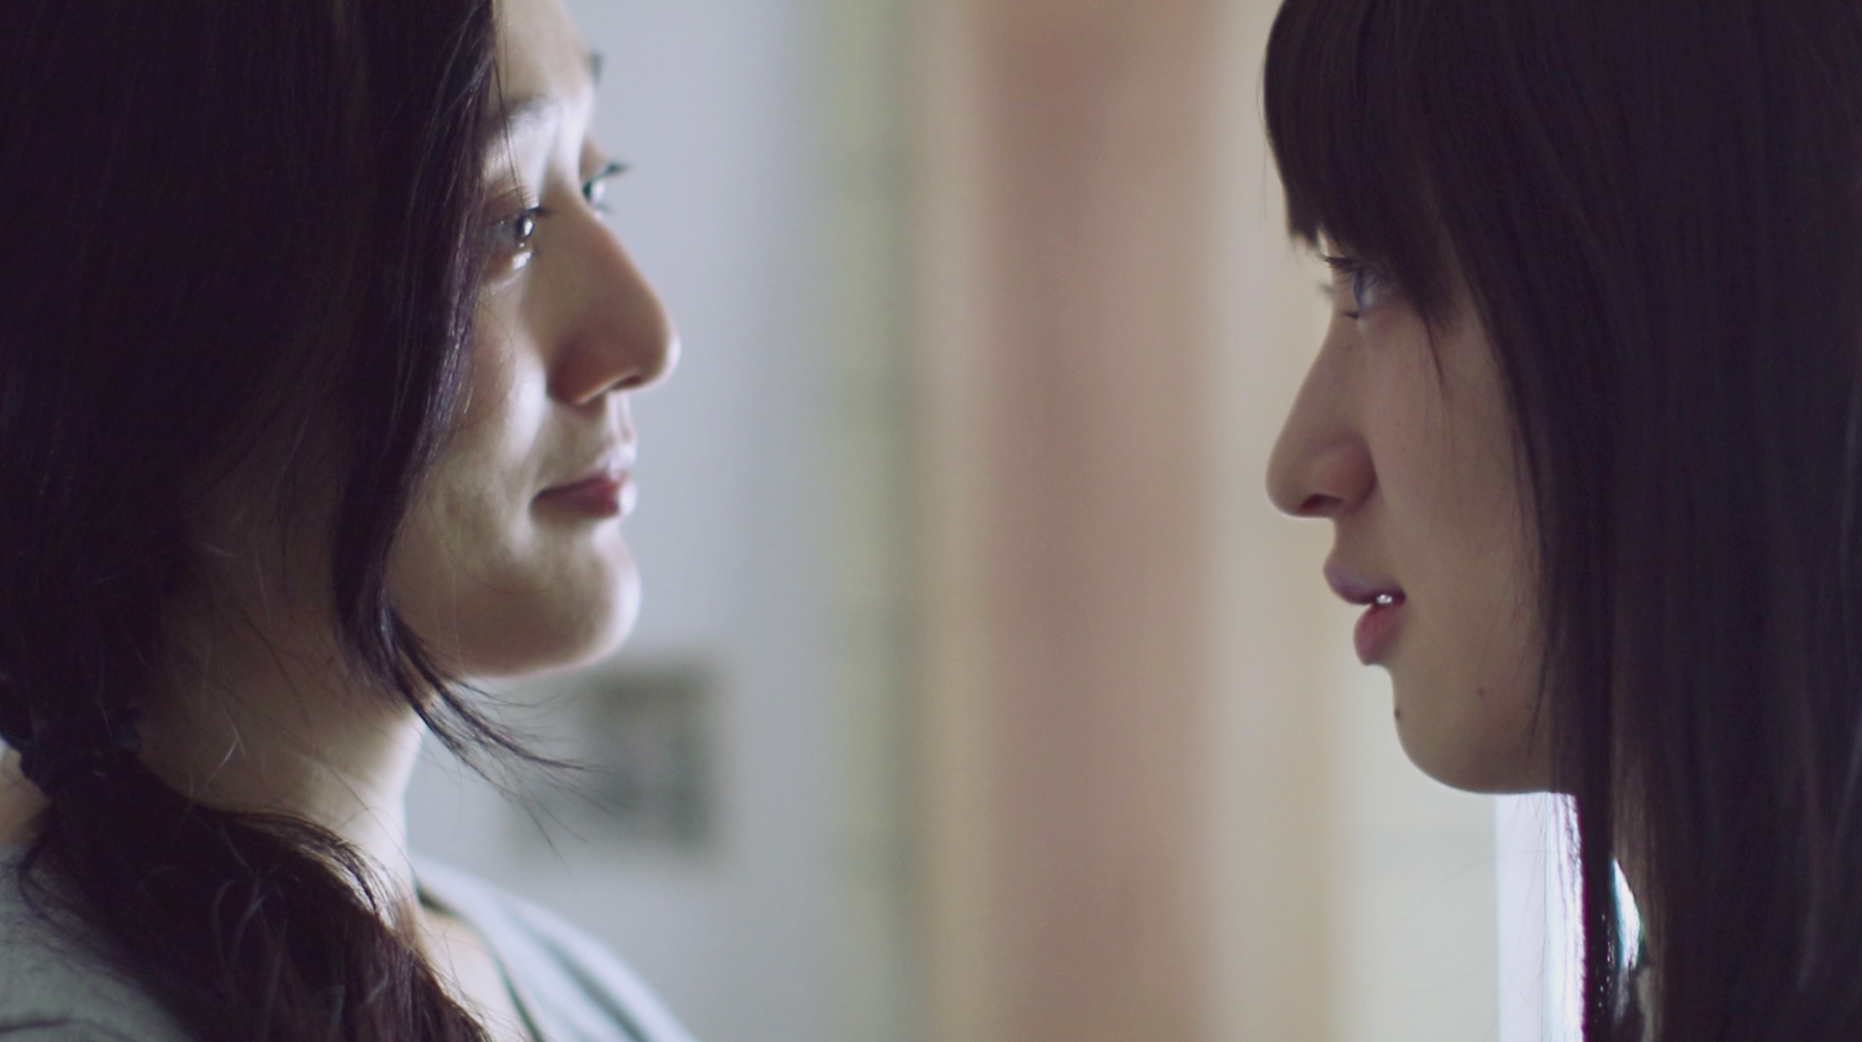 Two women talking with each other